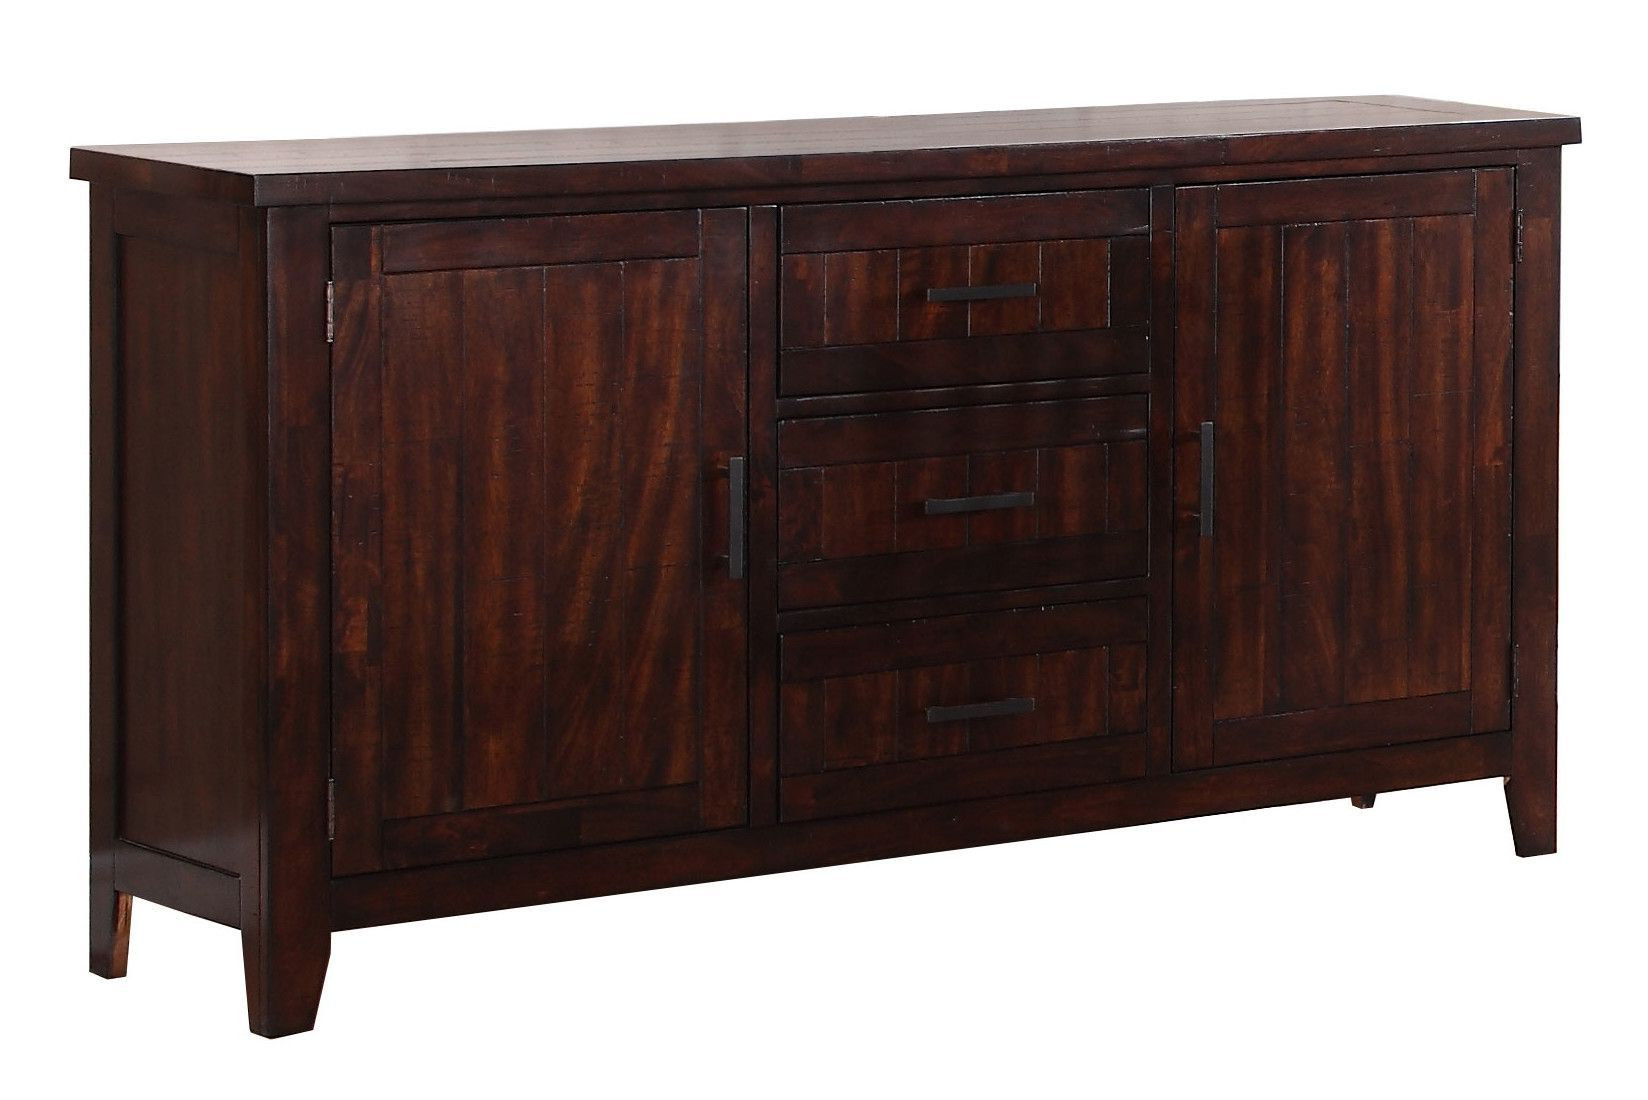 Mannox Sideboard | Products | Sideboard, Dining Room, Furniture Inside Seiling Sideboards (View 5 of 20)